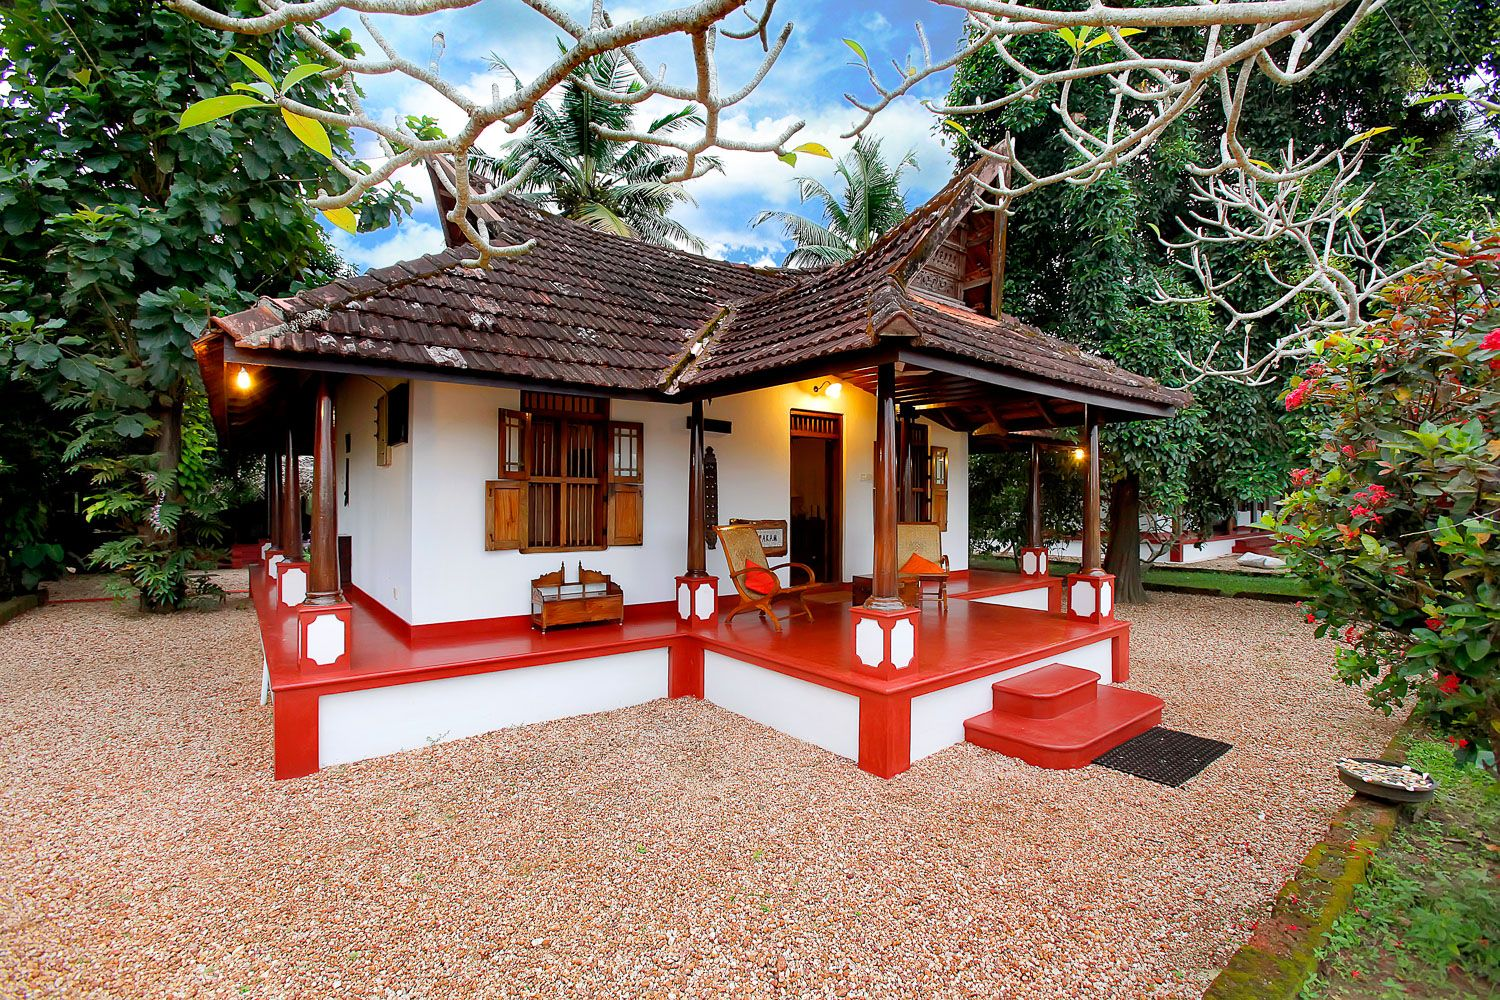 Philipkutty S Farm Stay In Independent Homely Waterfront Villas Http Www Kittencarcare In Village House Design Indian Home Design House Design Pictures